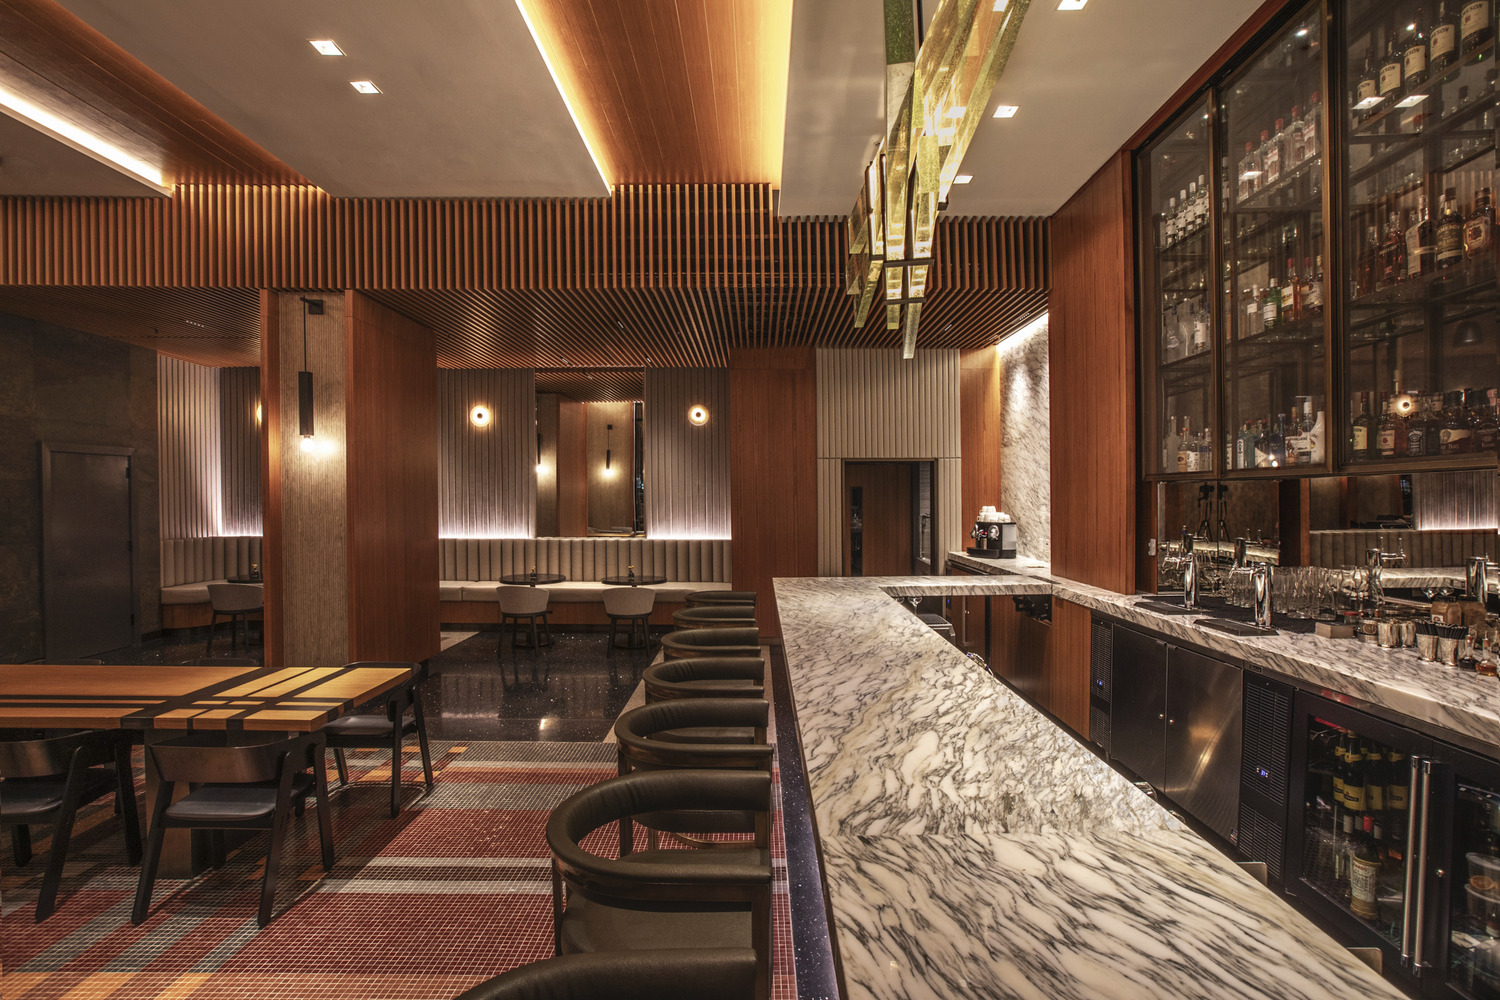 CBG builds Marriott AC, a 13-Story, 234-Room Luxury Hotel with Retail and Amenities in Washington, DC - Image #2